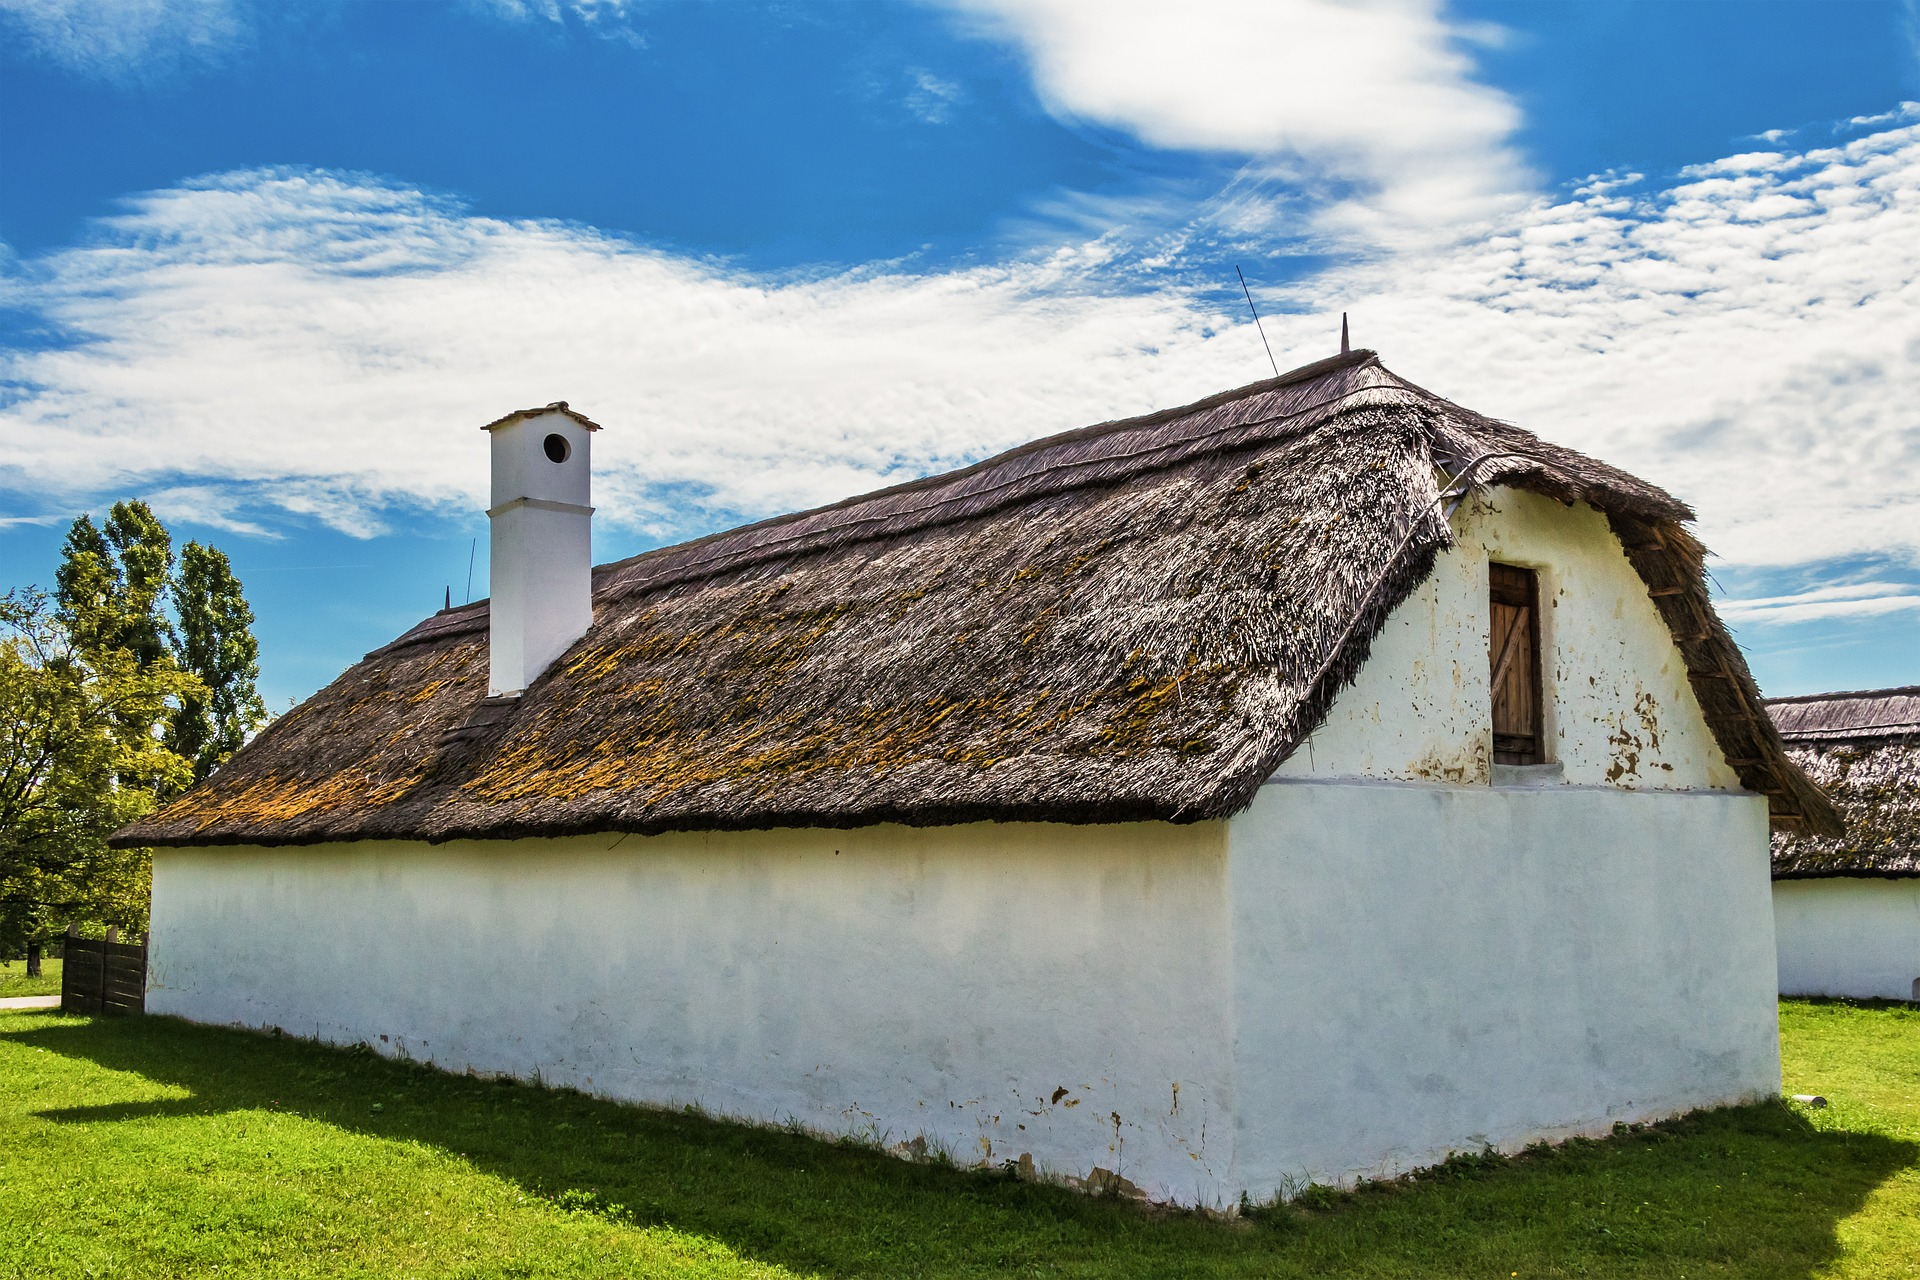 old-house-626633_1920